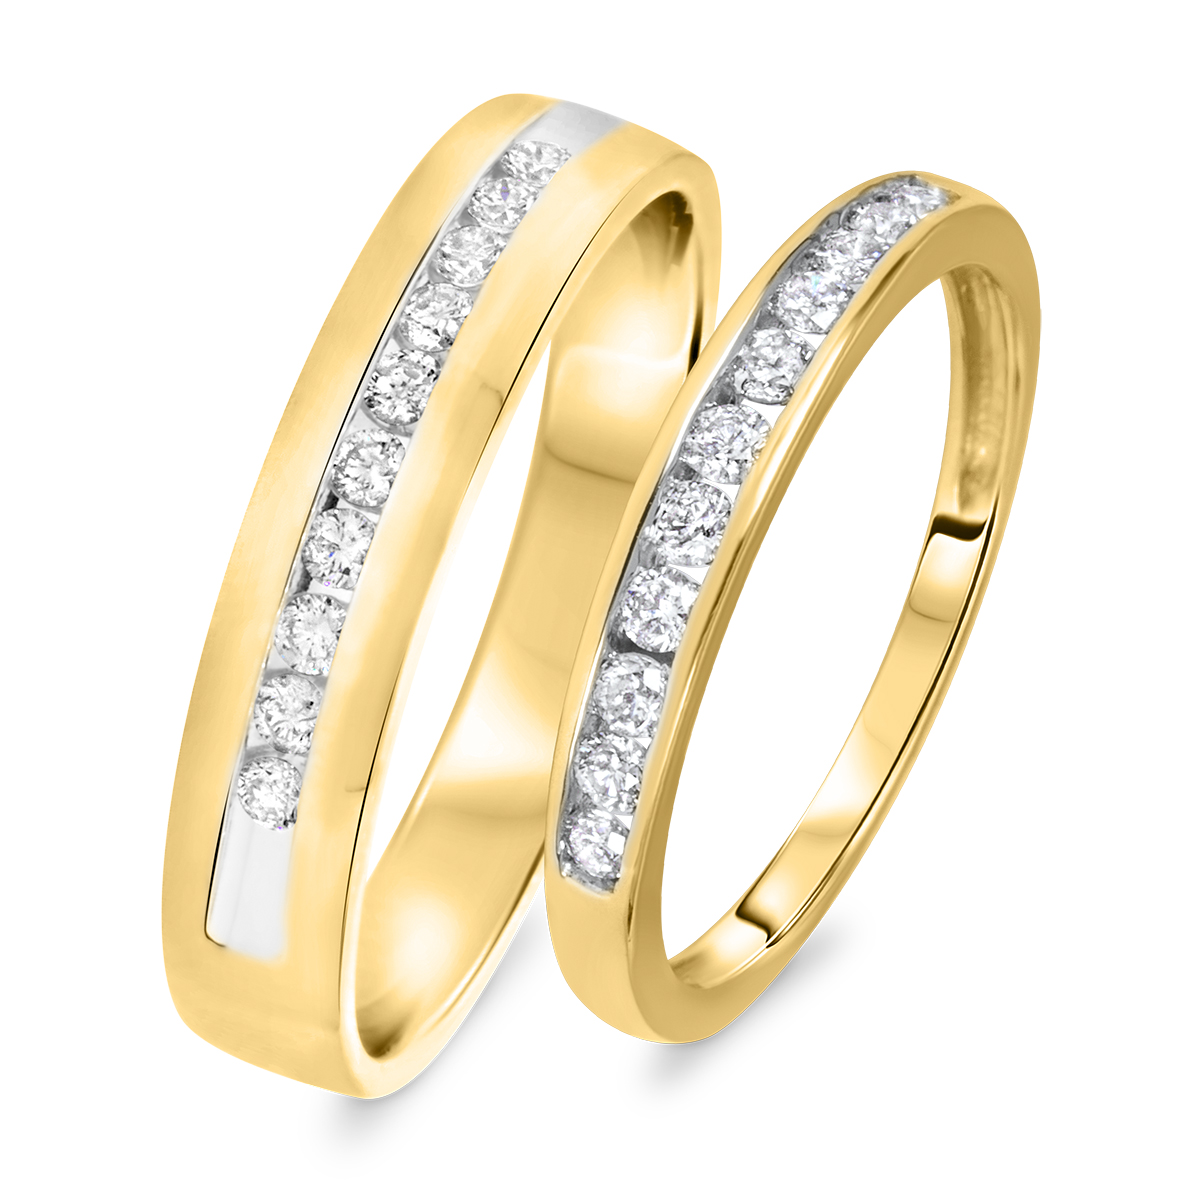 1/2 Carat T.W. Round Cut Diamond His And Hers Wedding Band Set 10K Yellow Gold-